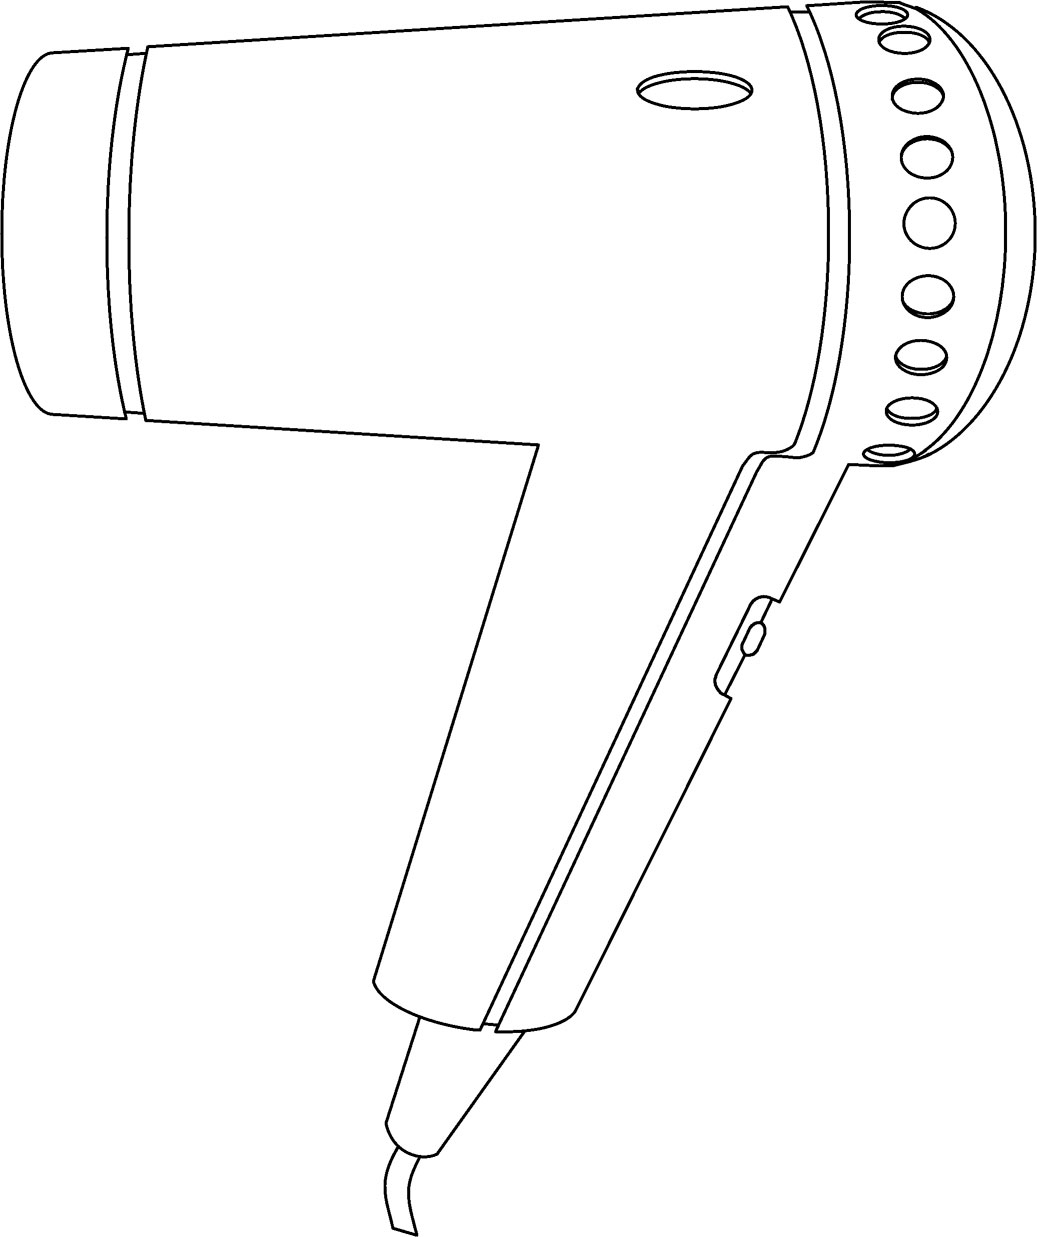 hair dryer coloring pages - photo #2